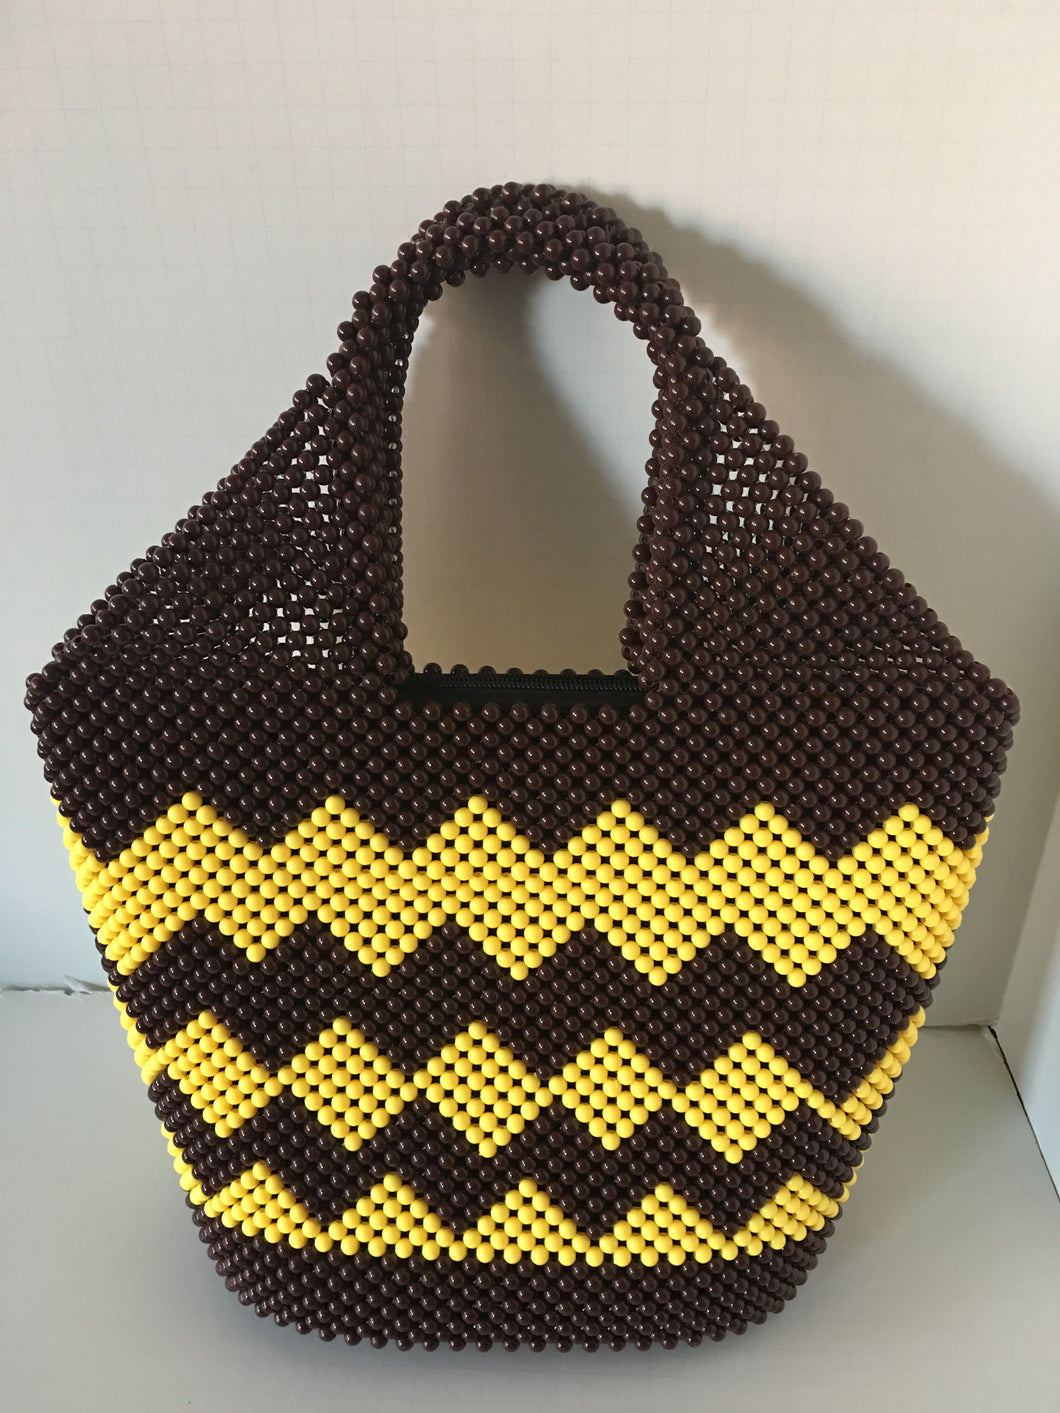 Brown and Yellow Color Hand Crafted Beaded Handbag.